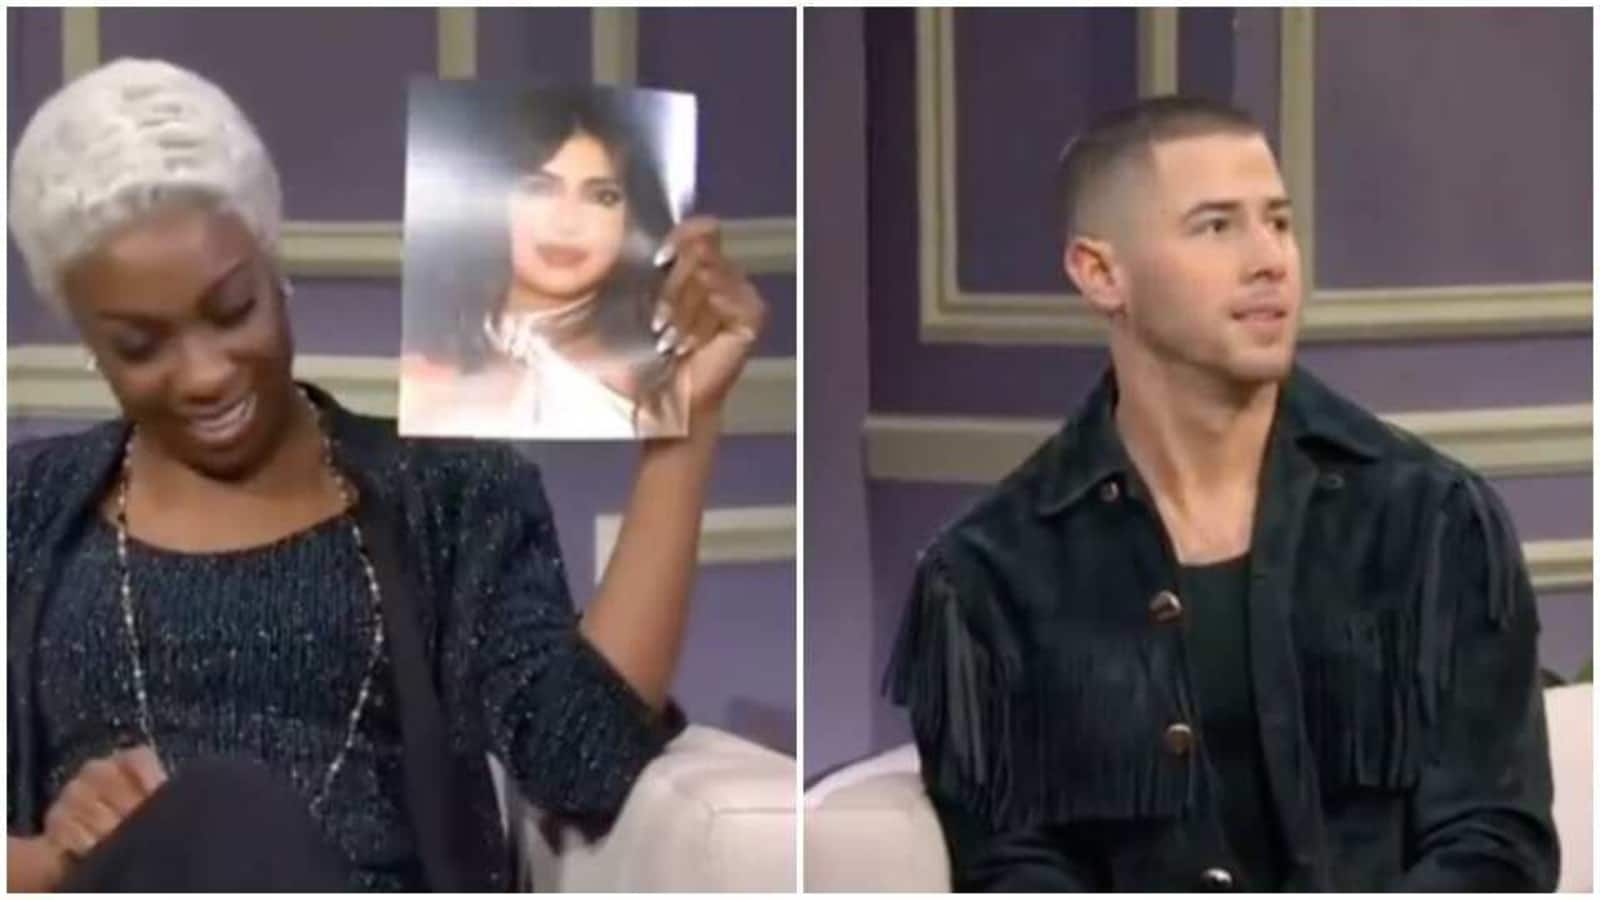 Priyanka Chopra fans want to know her reaction after this raunchy moment with Nick Jonas on Saturday Night Live